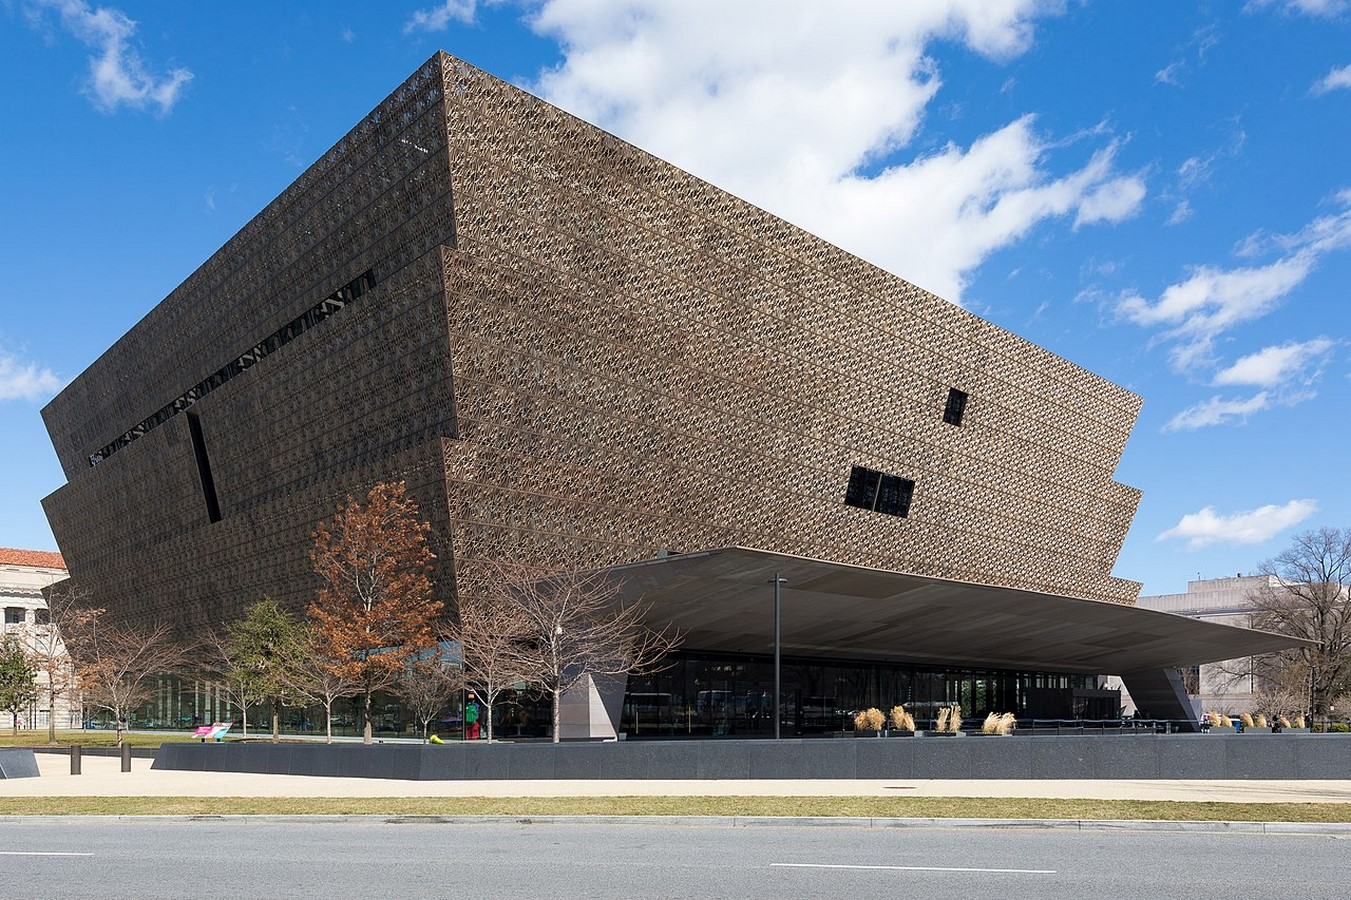 Smithsonian National Museum of African American History and Culture by David Adjaye: Commemorating America's Black heritage - Sheet1